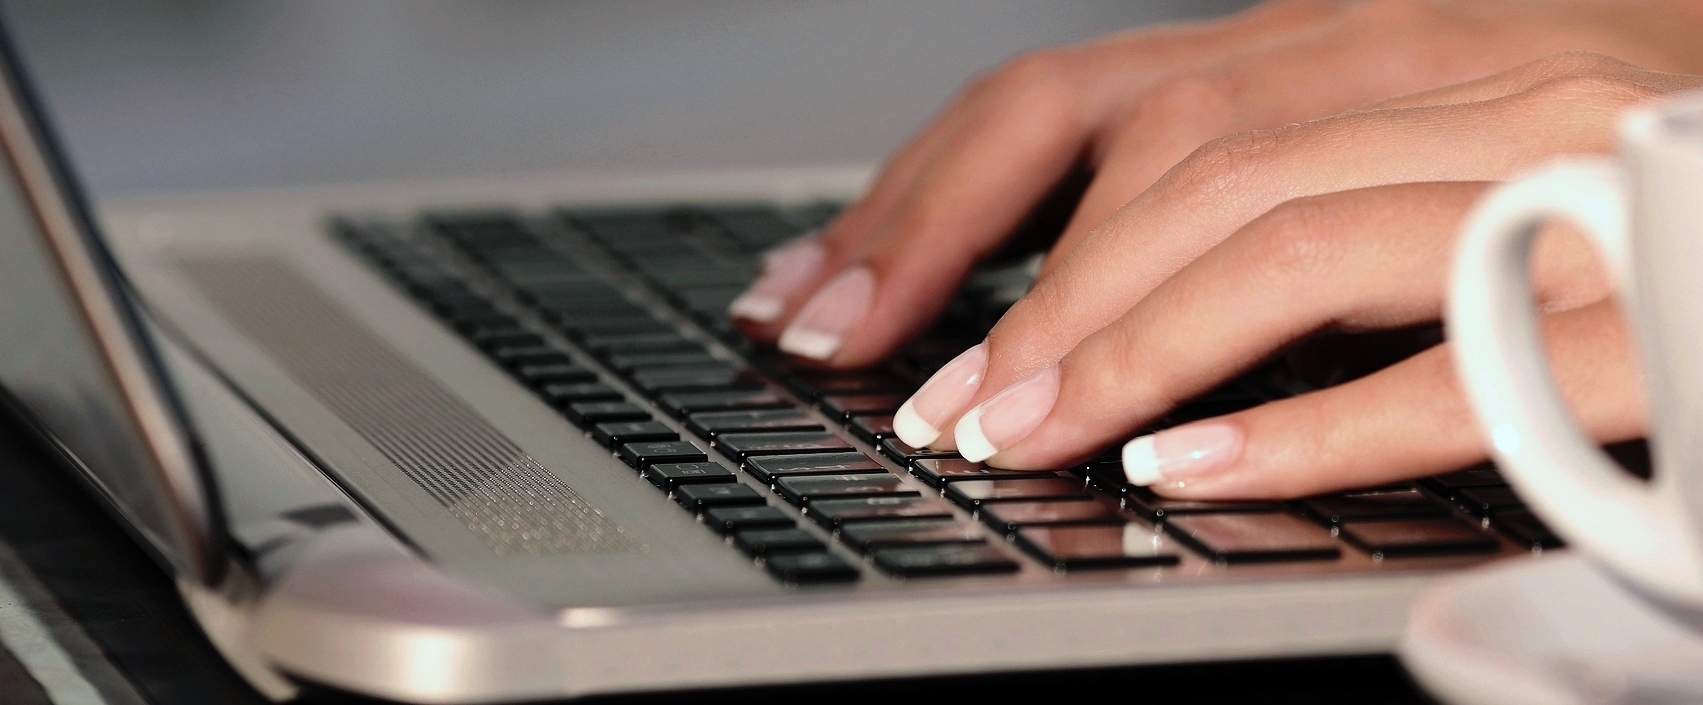 bigstock-Woman-Hands-Typing-In-A-Laptop-77151443 1703x705